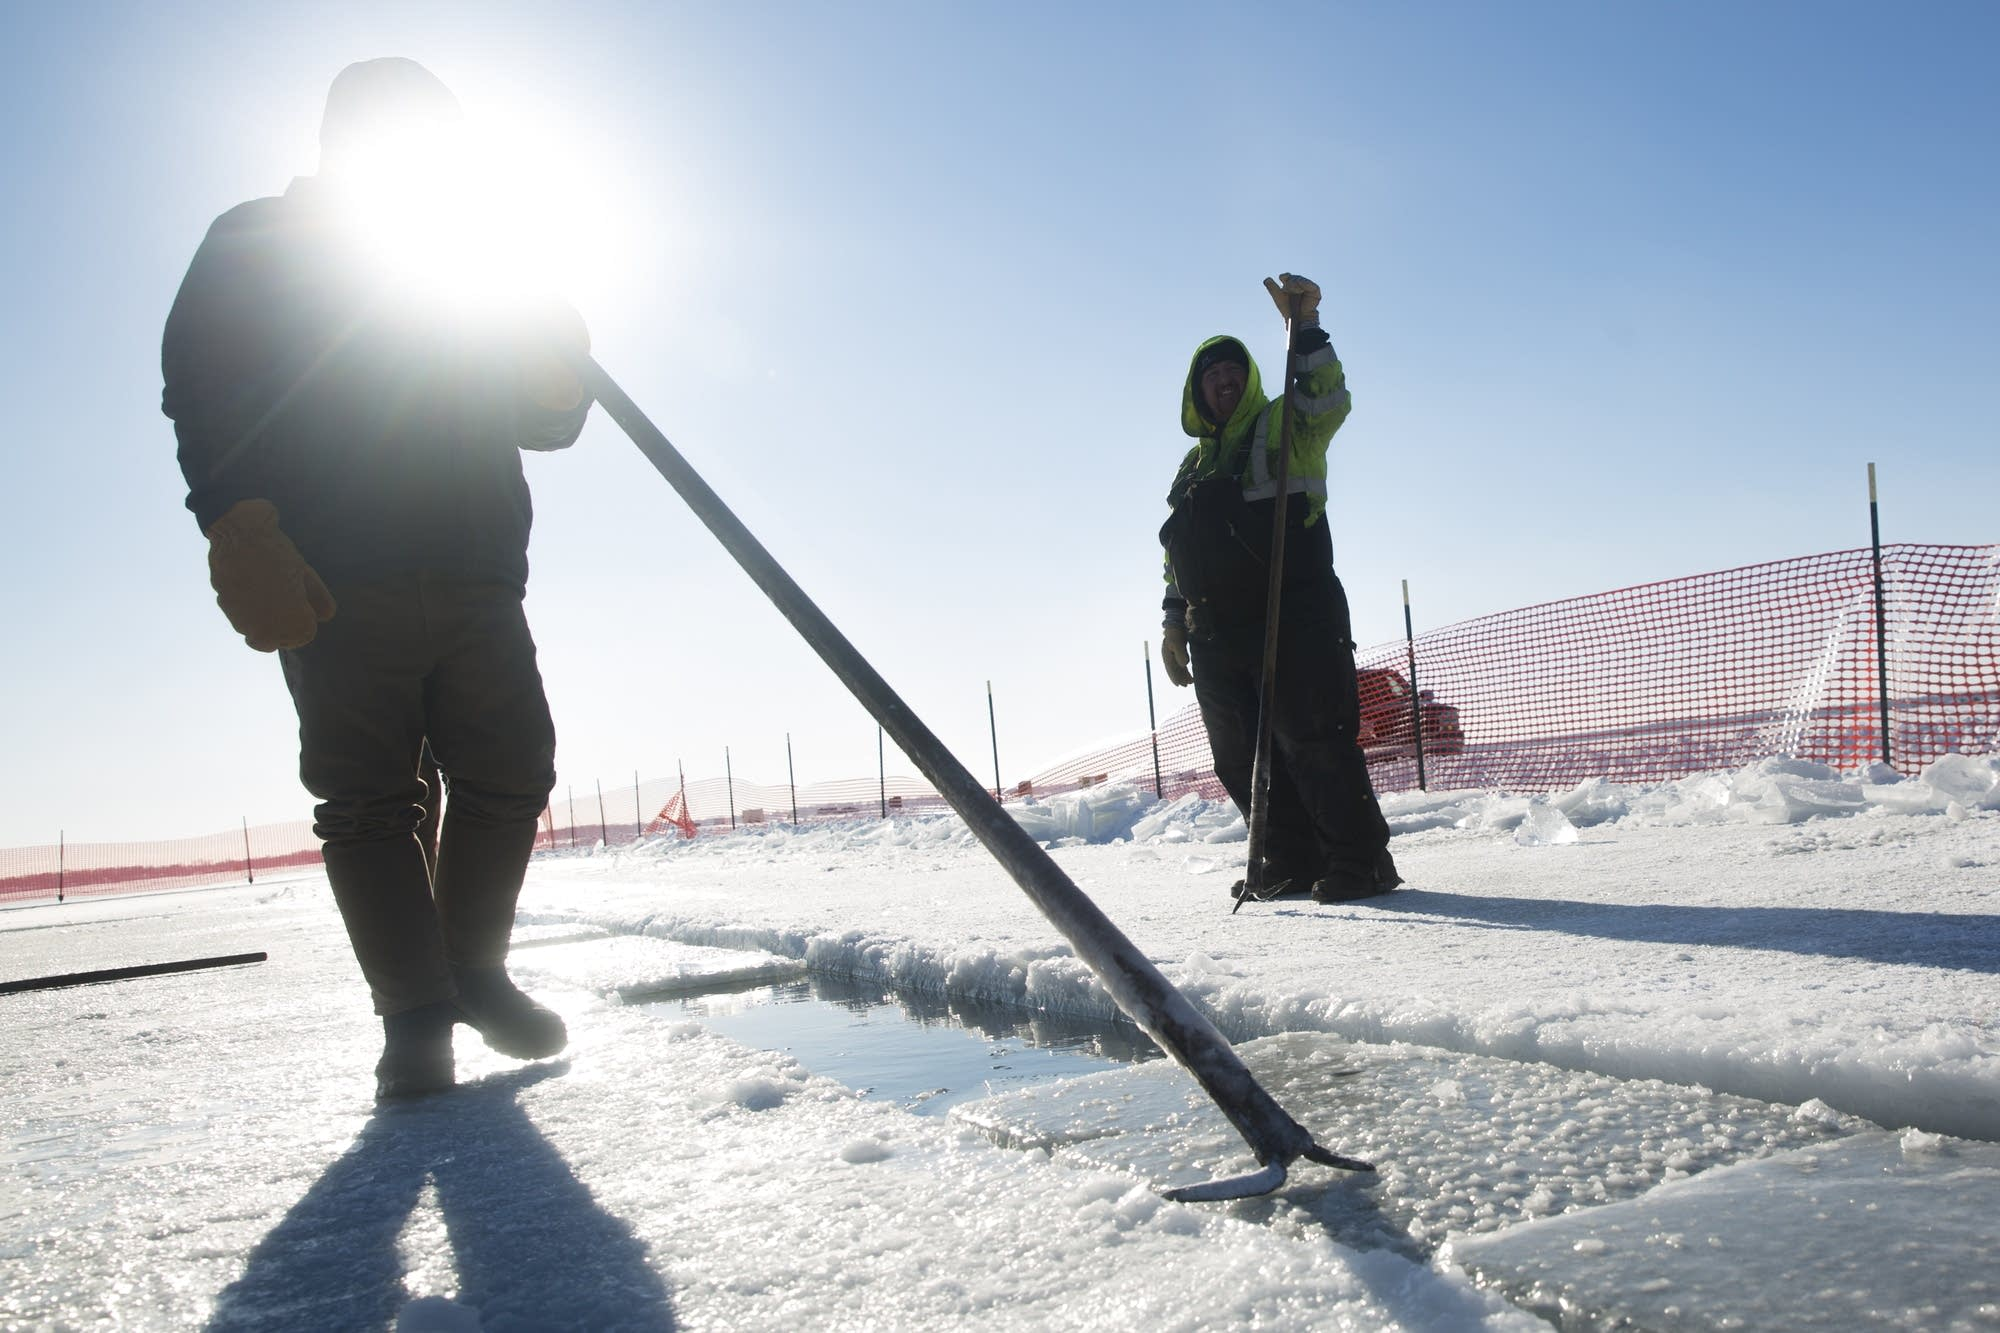 A volunteer uses an ice pick to push blocks of ice.